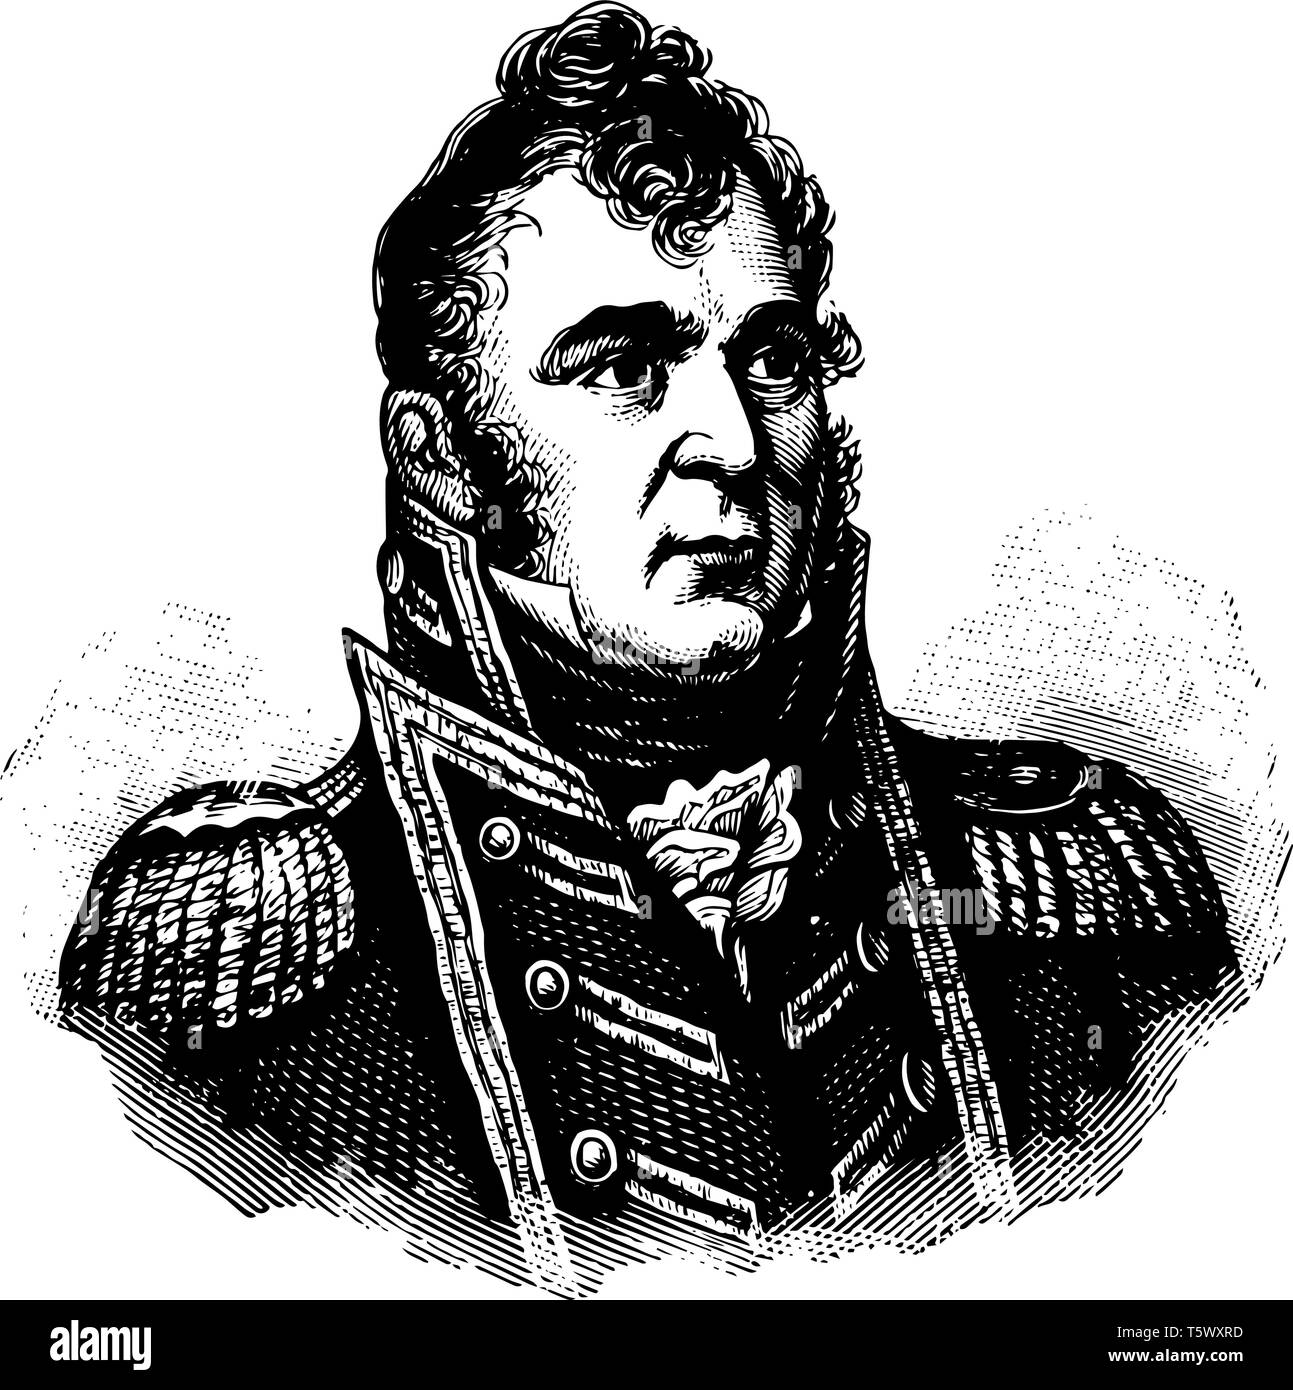 Isaac Chauncey 1772 to 1840 he was an officer in the United States navy and the president of the board of Navy commissioners vintage line drawing or e - Stock Vector